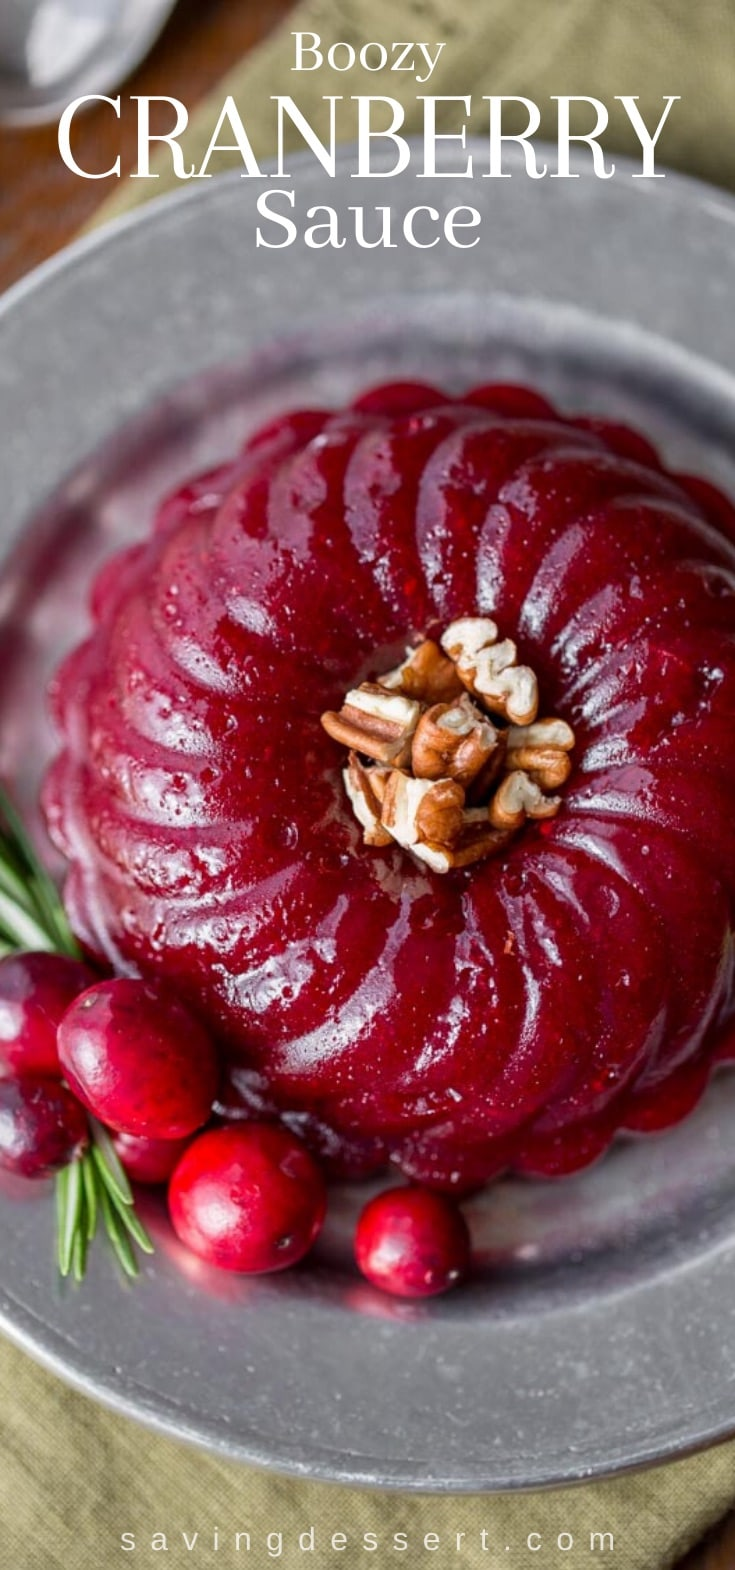 A molded ring of boozy cranberry sauce with fresh cranberry garnish and pecans.